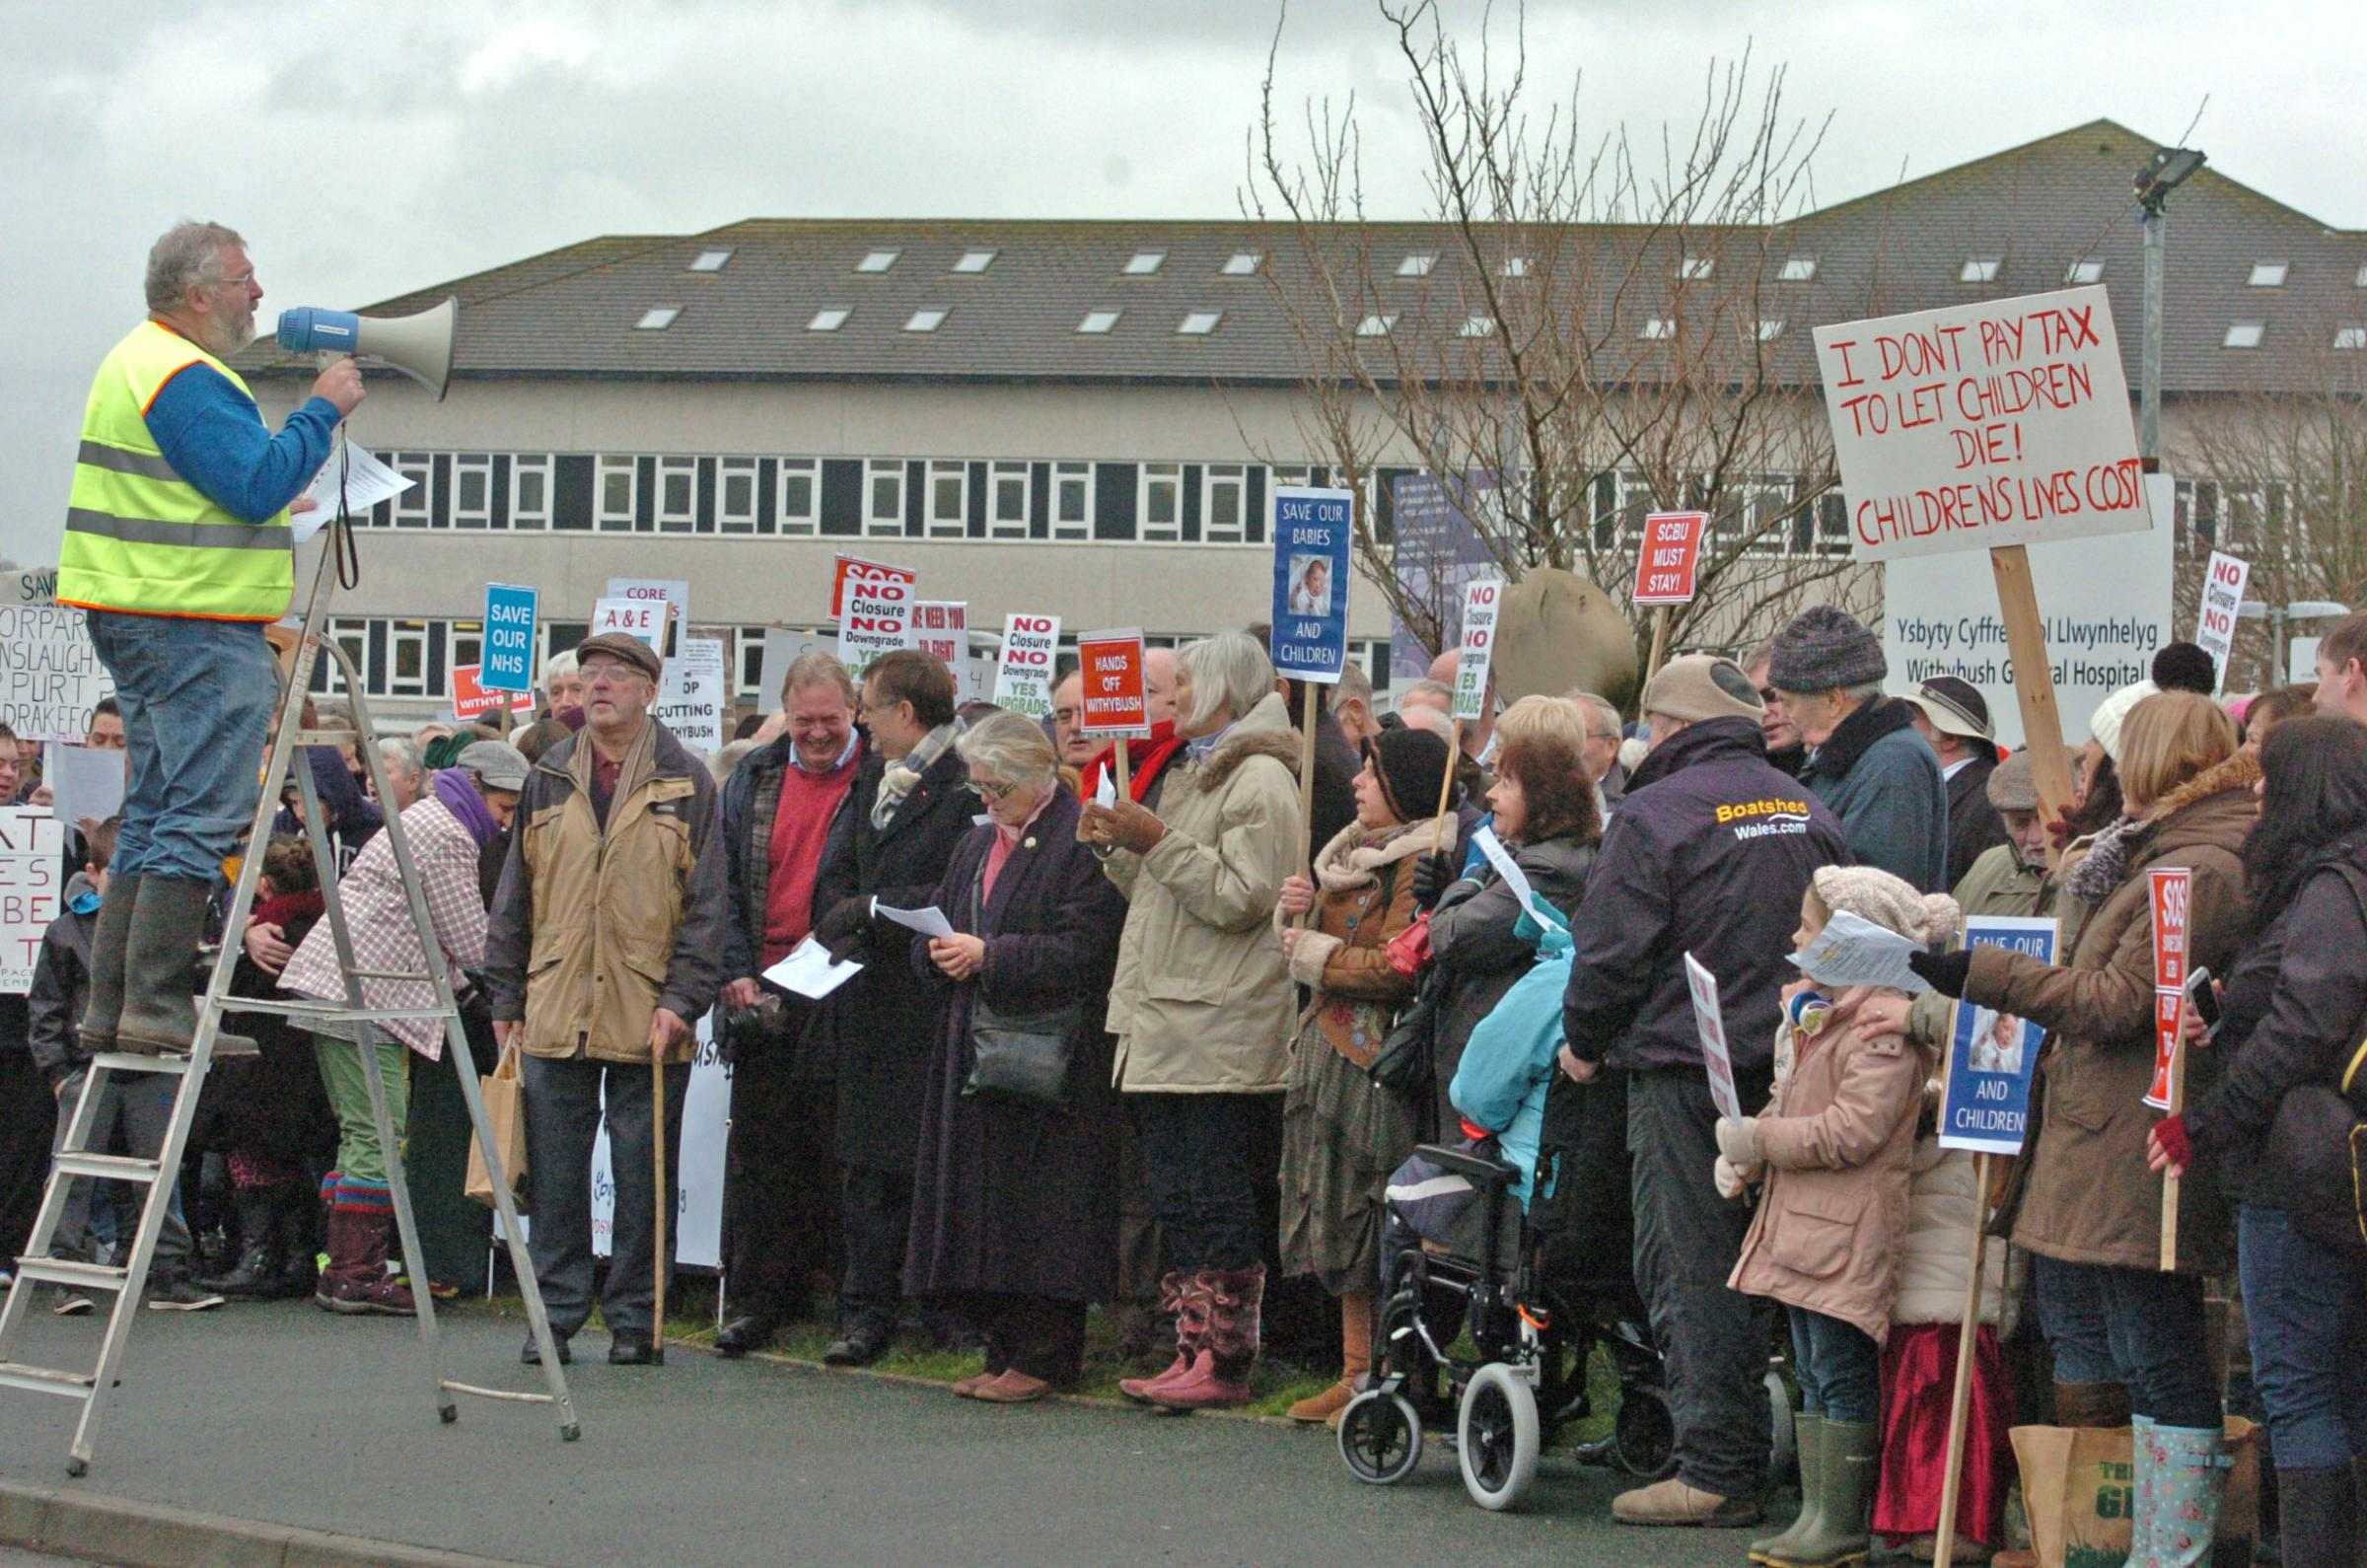 600 protest against cuts to services at Withybush Hospital